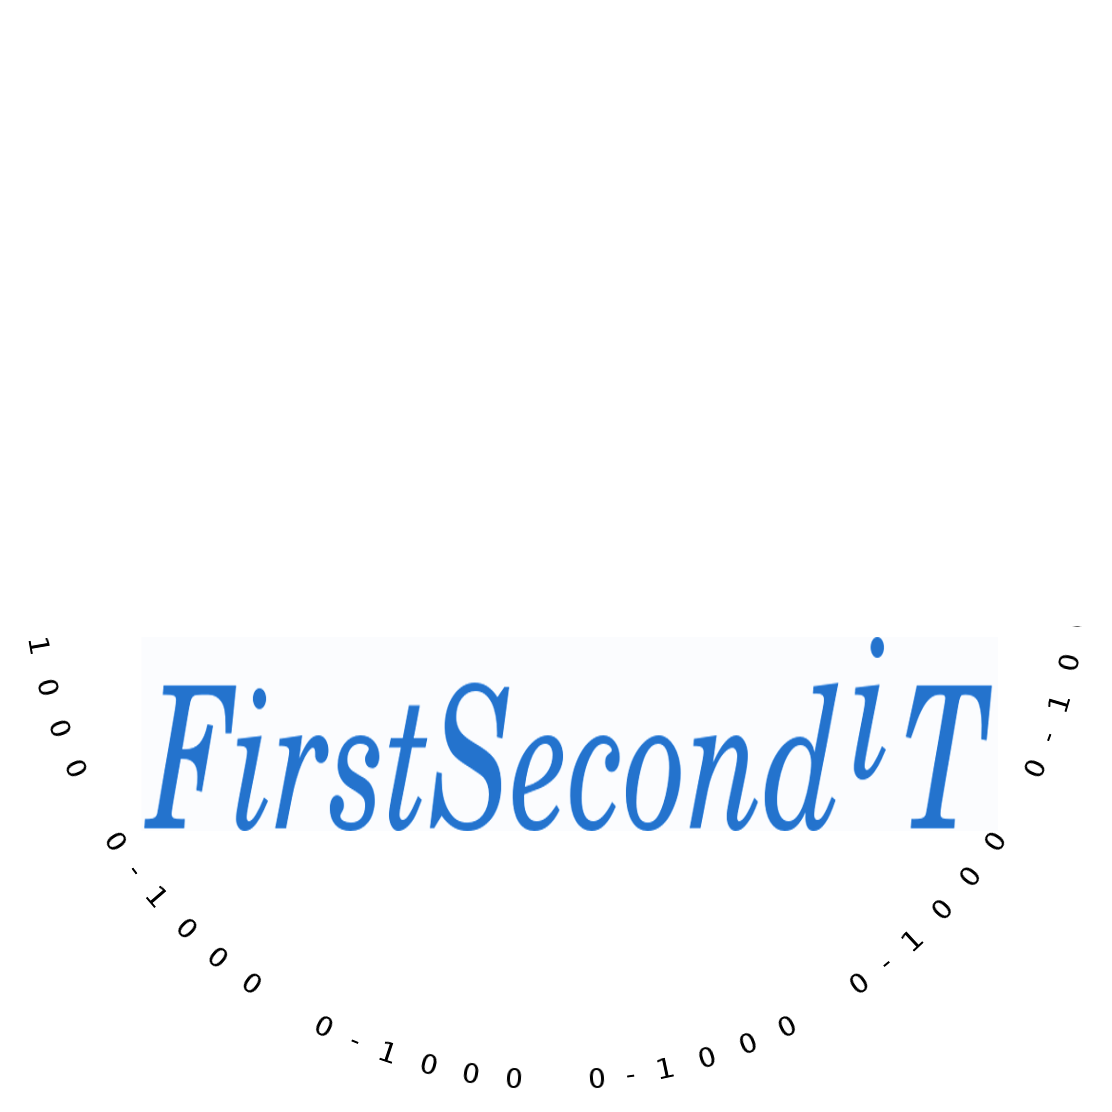 First Second iT